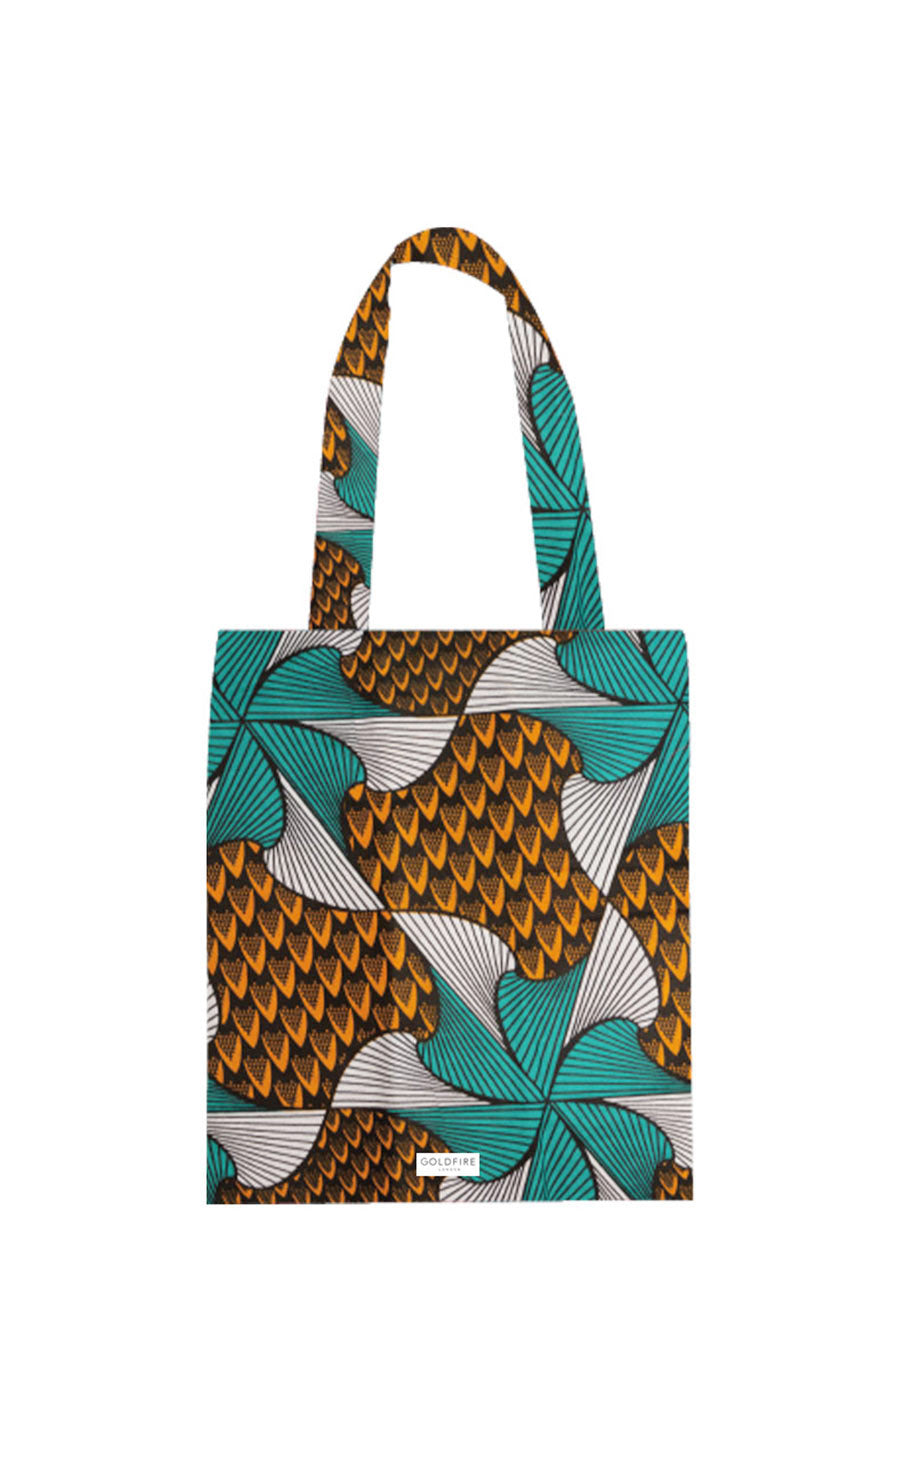 African Print floral Tote bag in orange and green